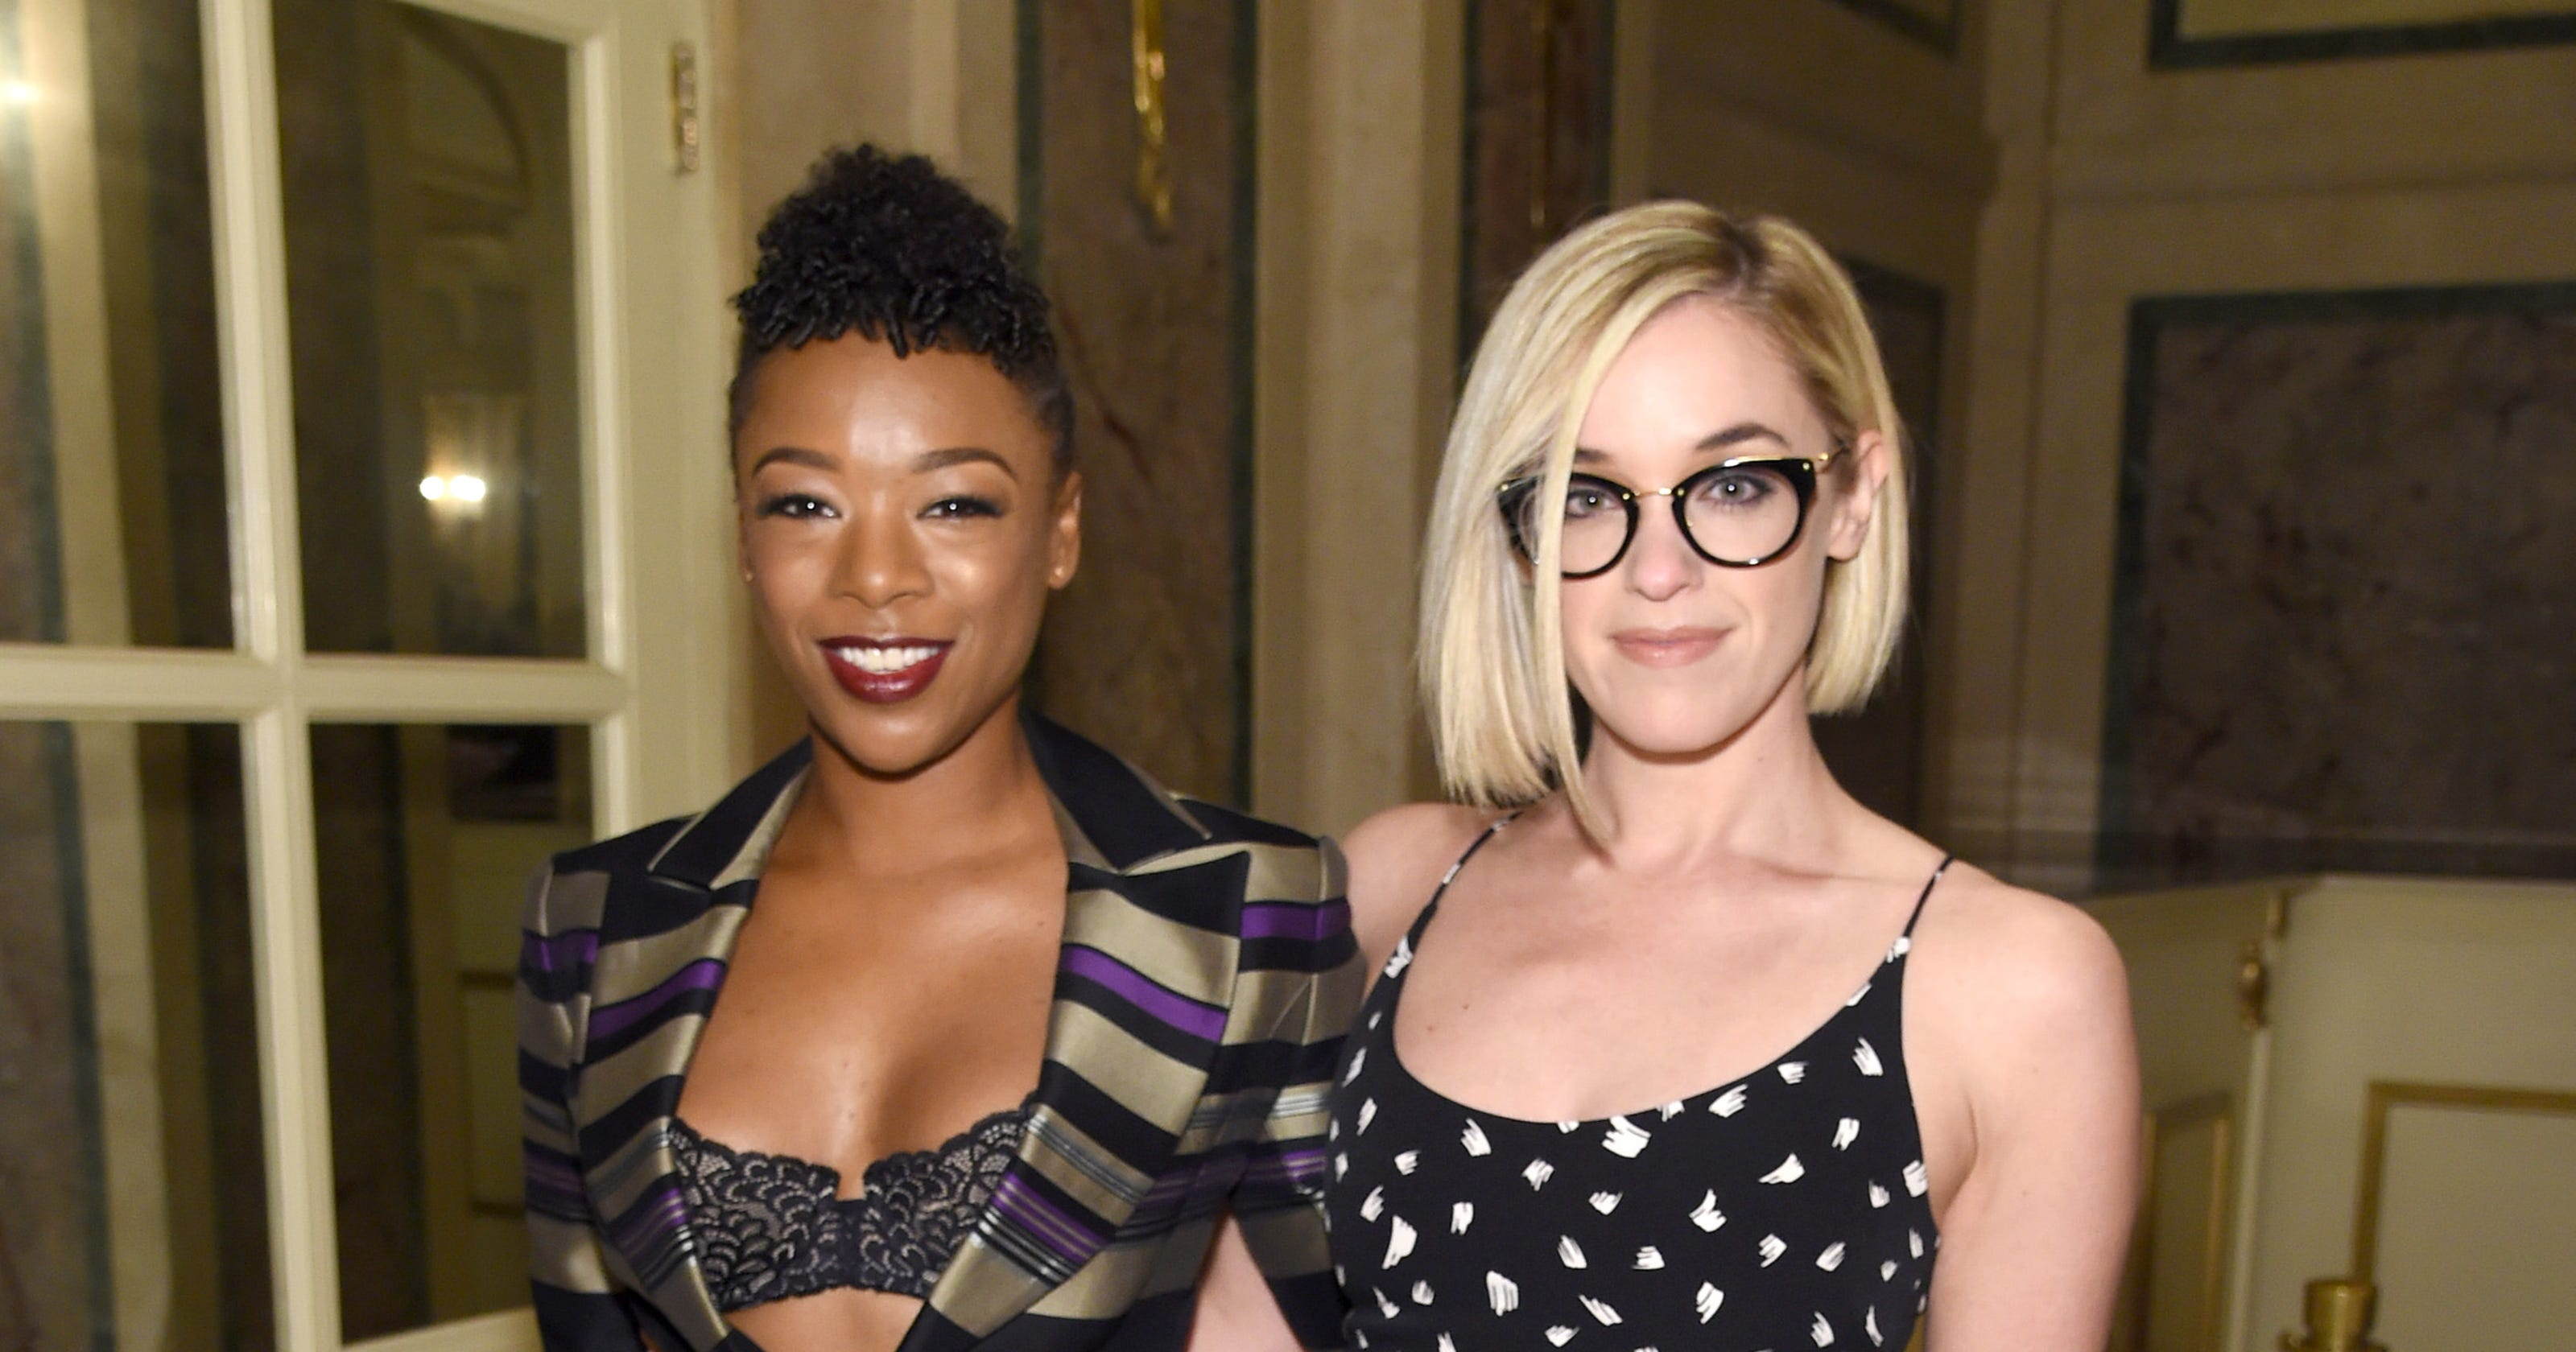 Samira Wiley On Why She And Fiancé Lauren Morelli Are So